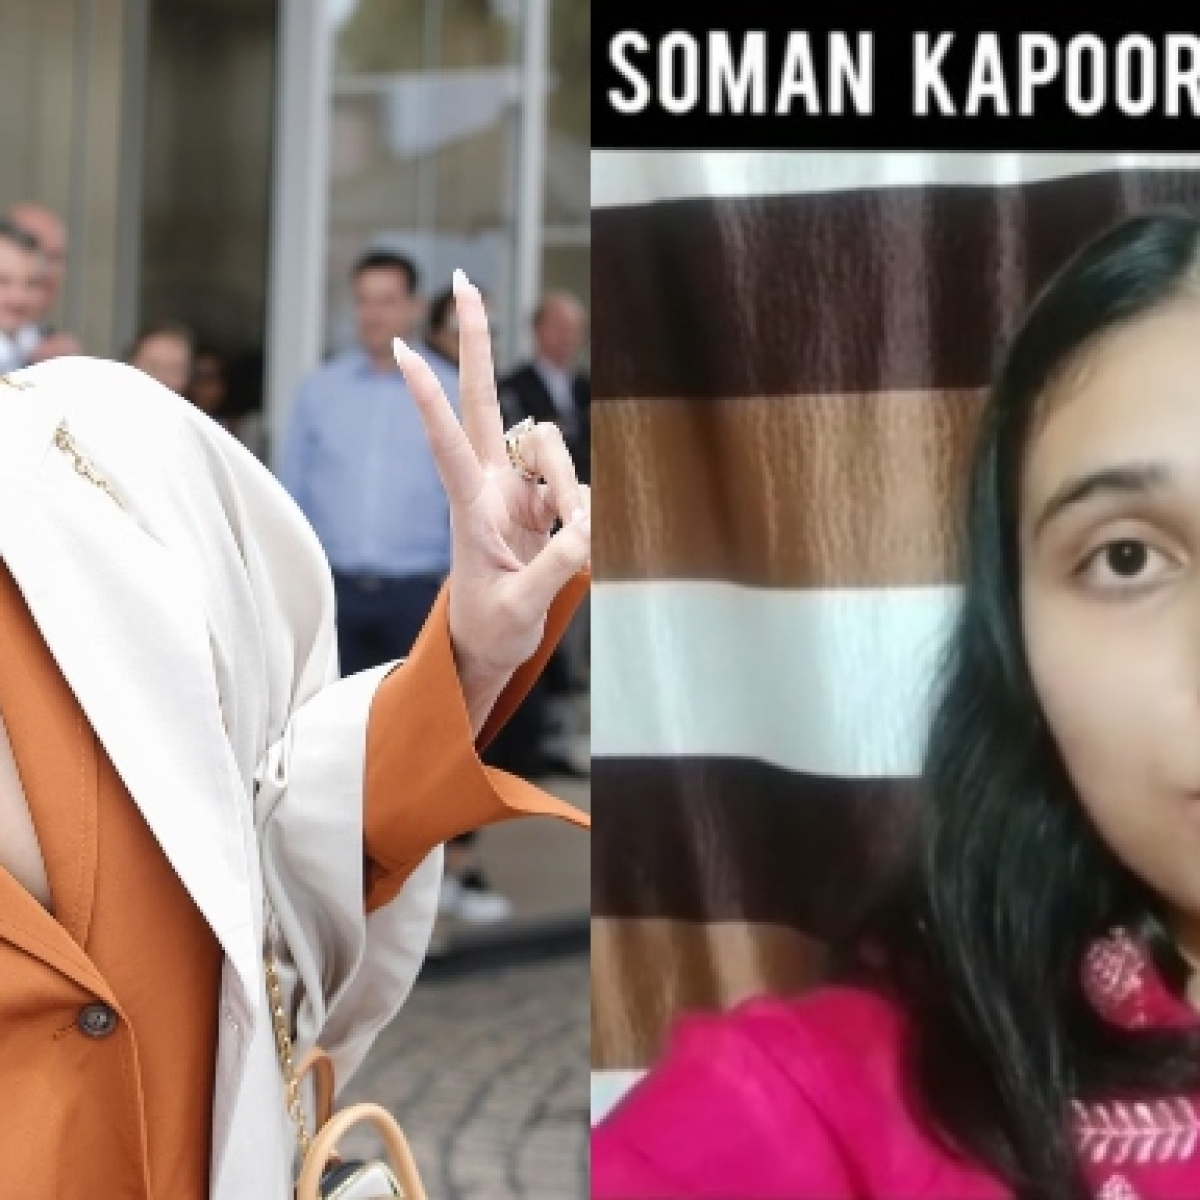 Saloni Gaur's version of Sonam Kapoor Ahuja 'celebrating'  Janta Curfew will leave you in splits